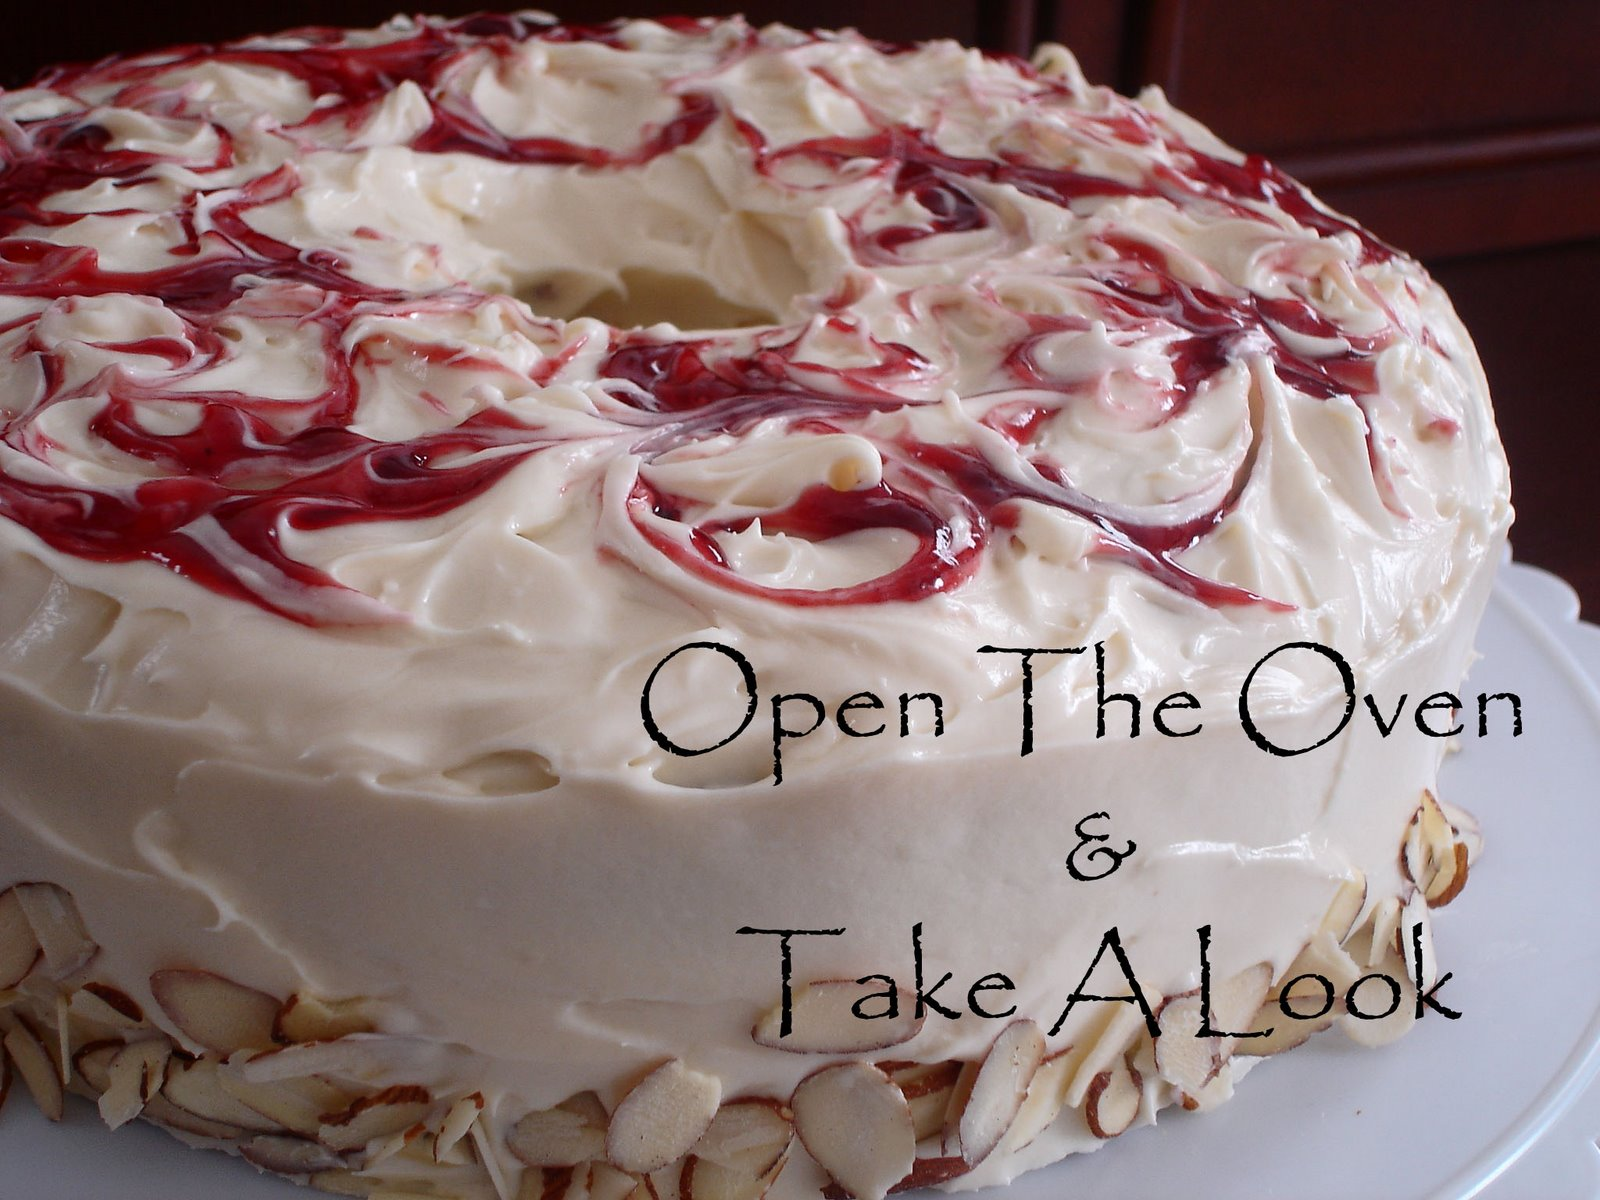 Open The Oven & Take A Look